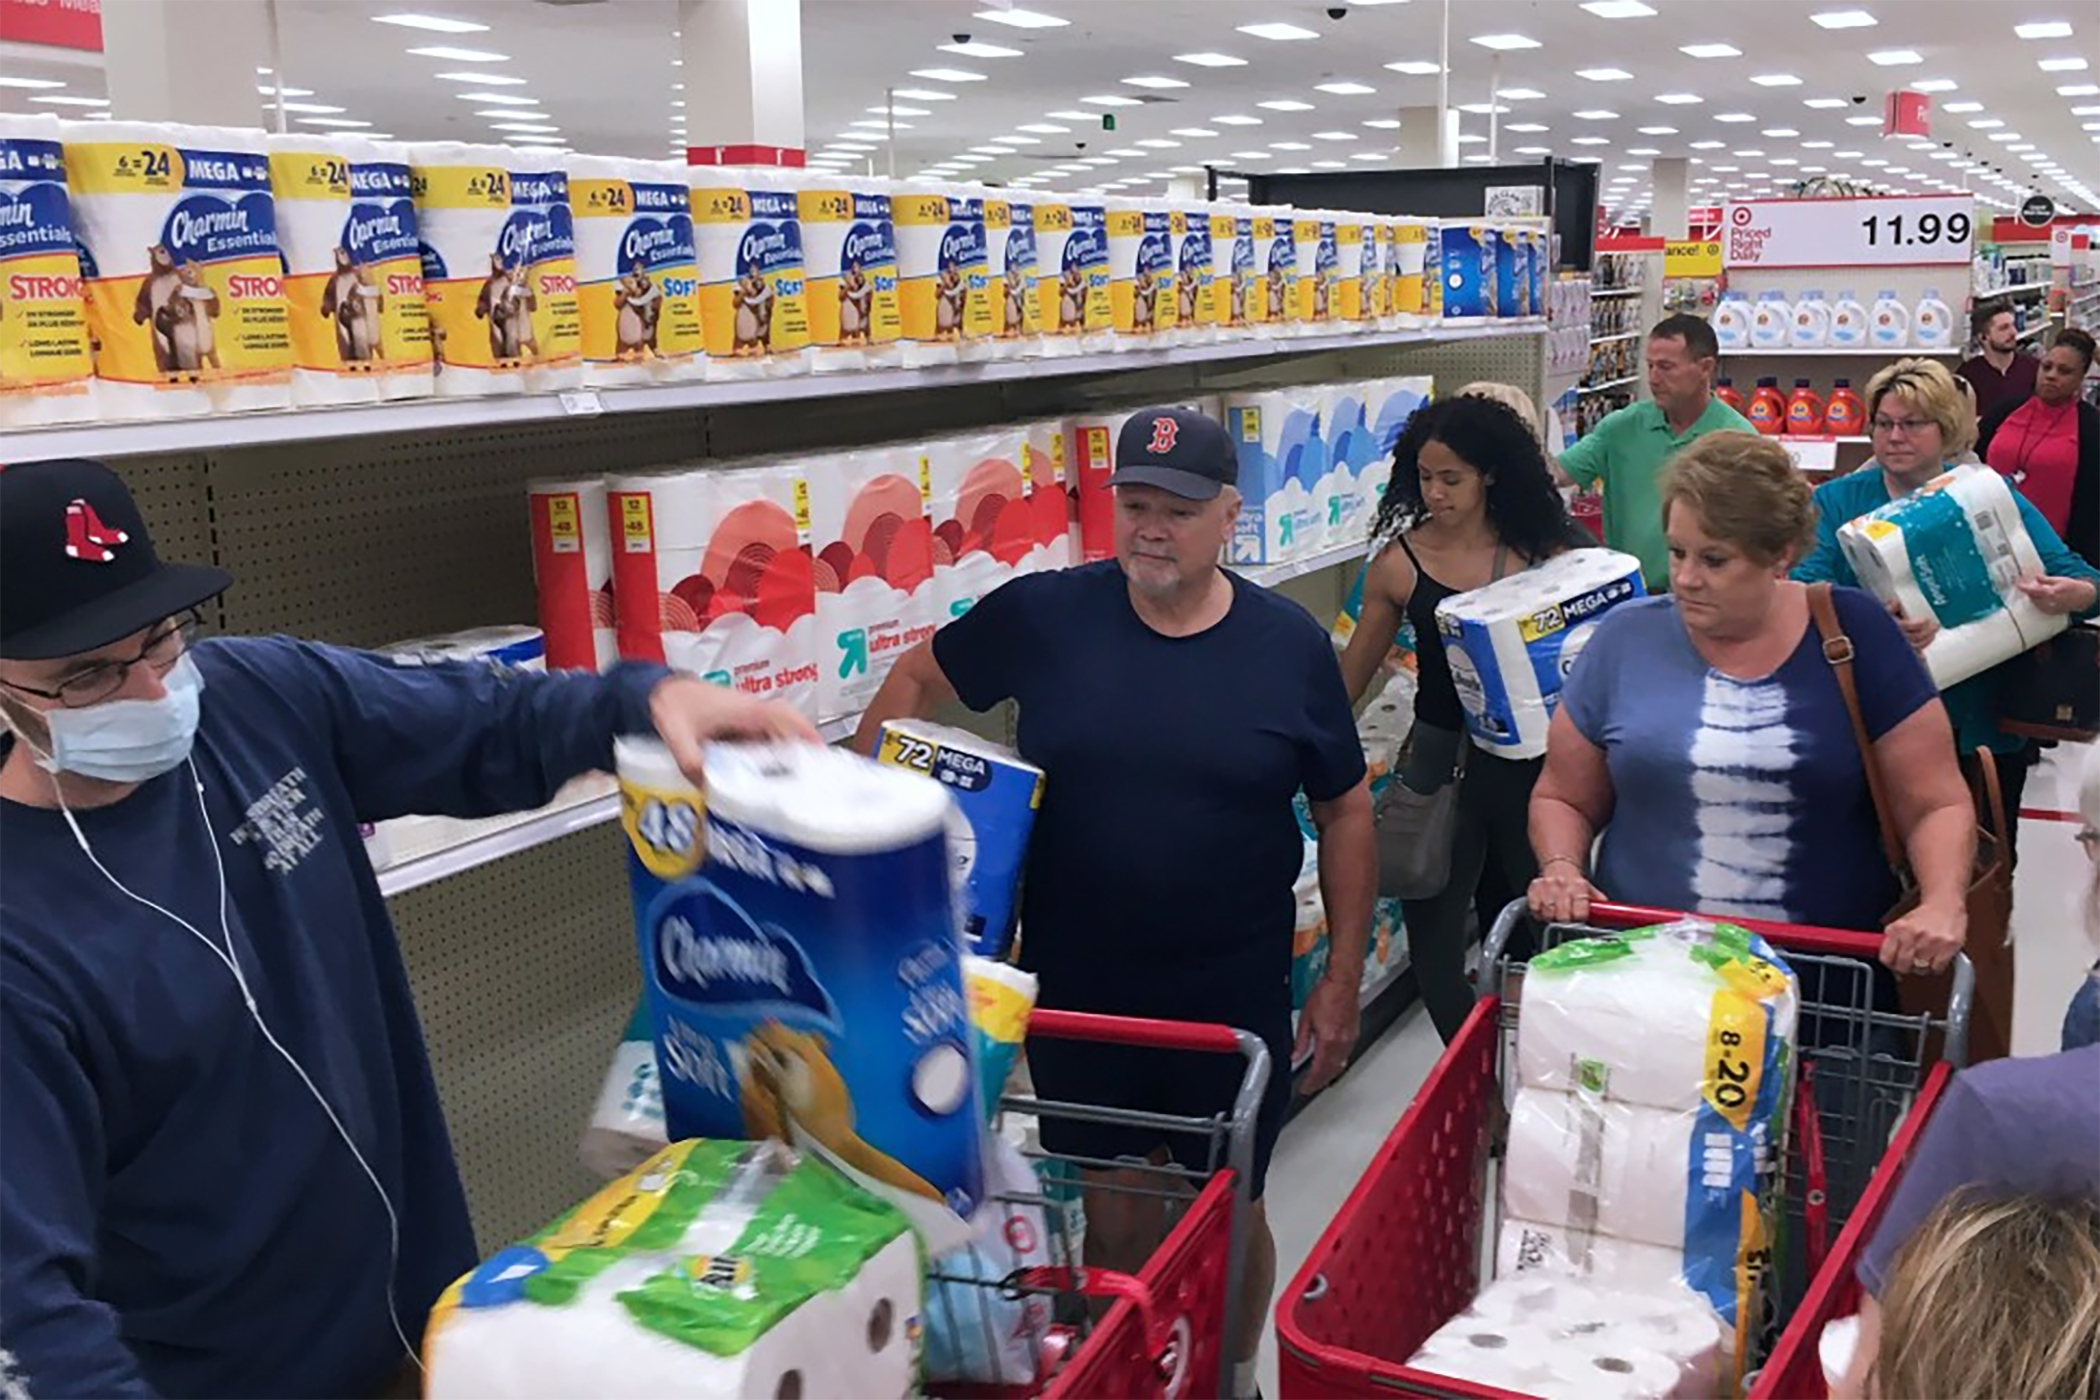 Customers rushed to purchase toilet paper at a Target store in response to the coronavirus pandemic. (Getty Images)